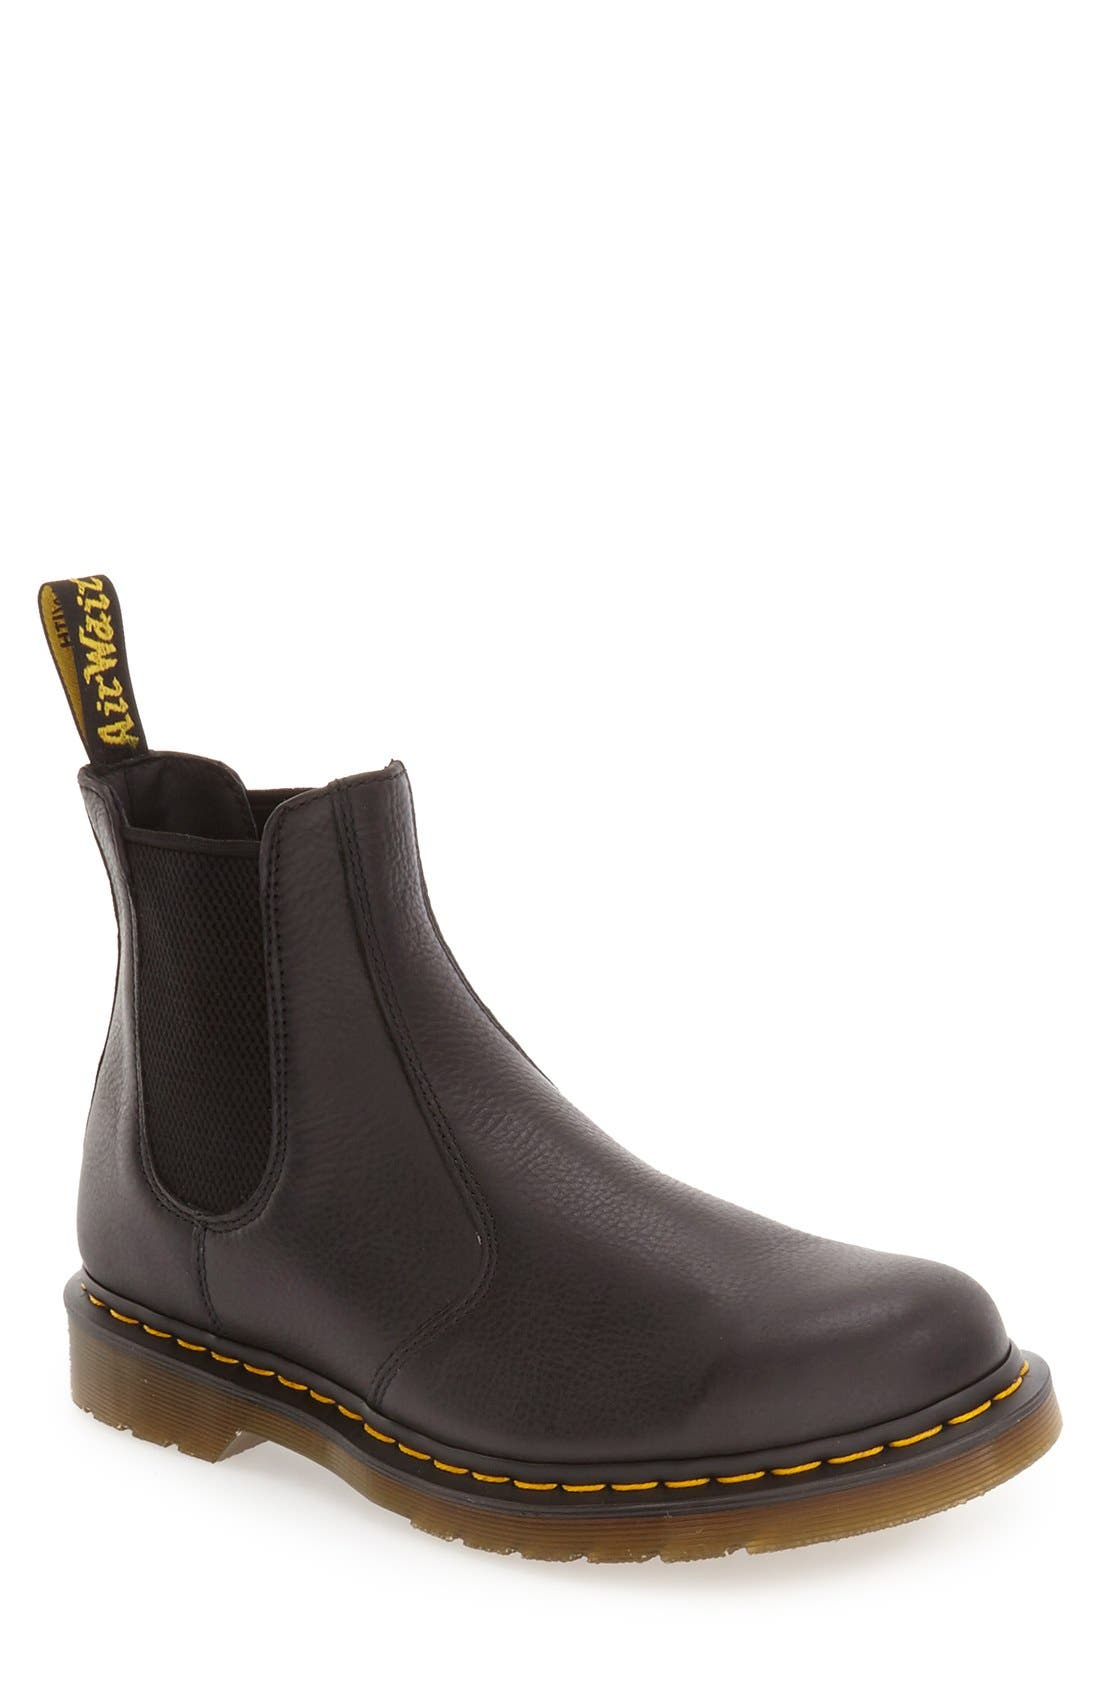 DR. MARTENS, '2976' Chelsea Boot, Main thumbnail 1, color, BLACK LEATHER